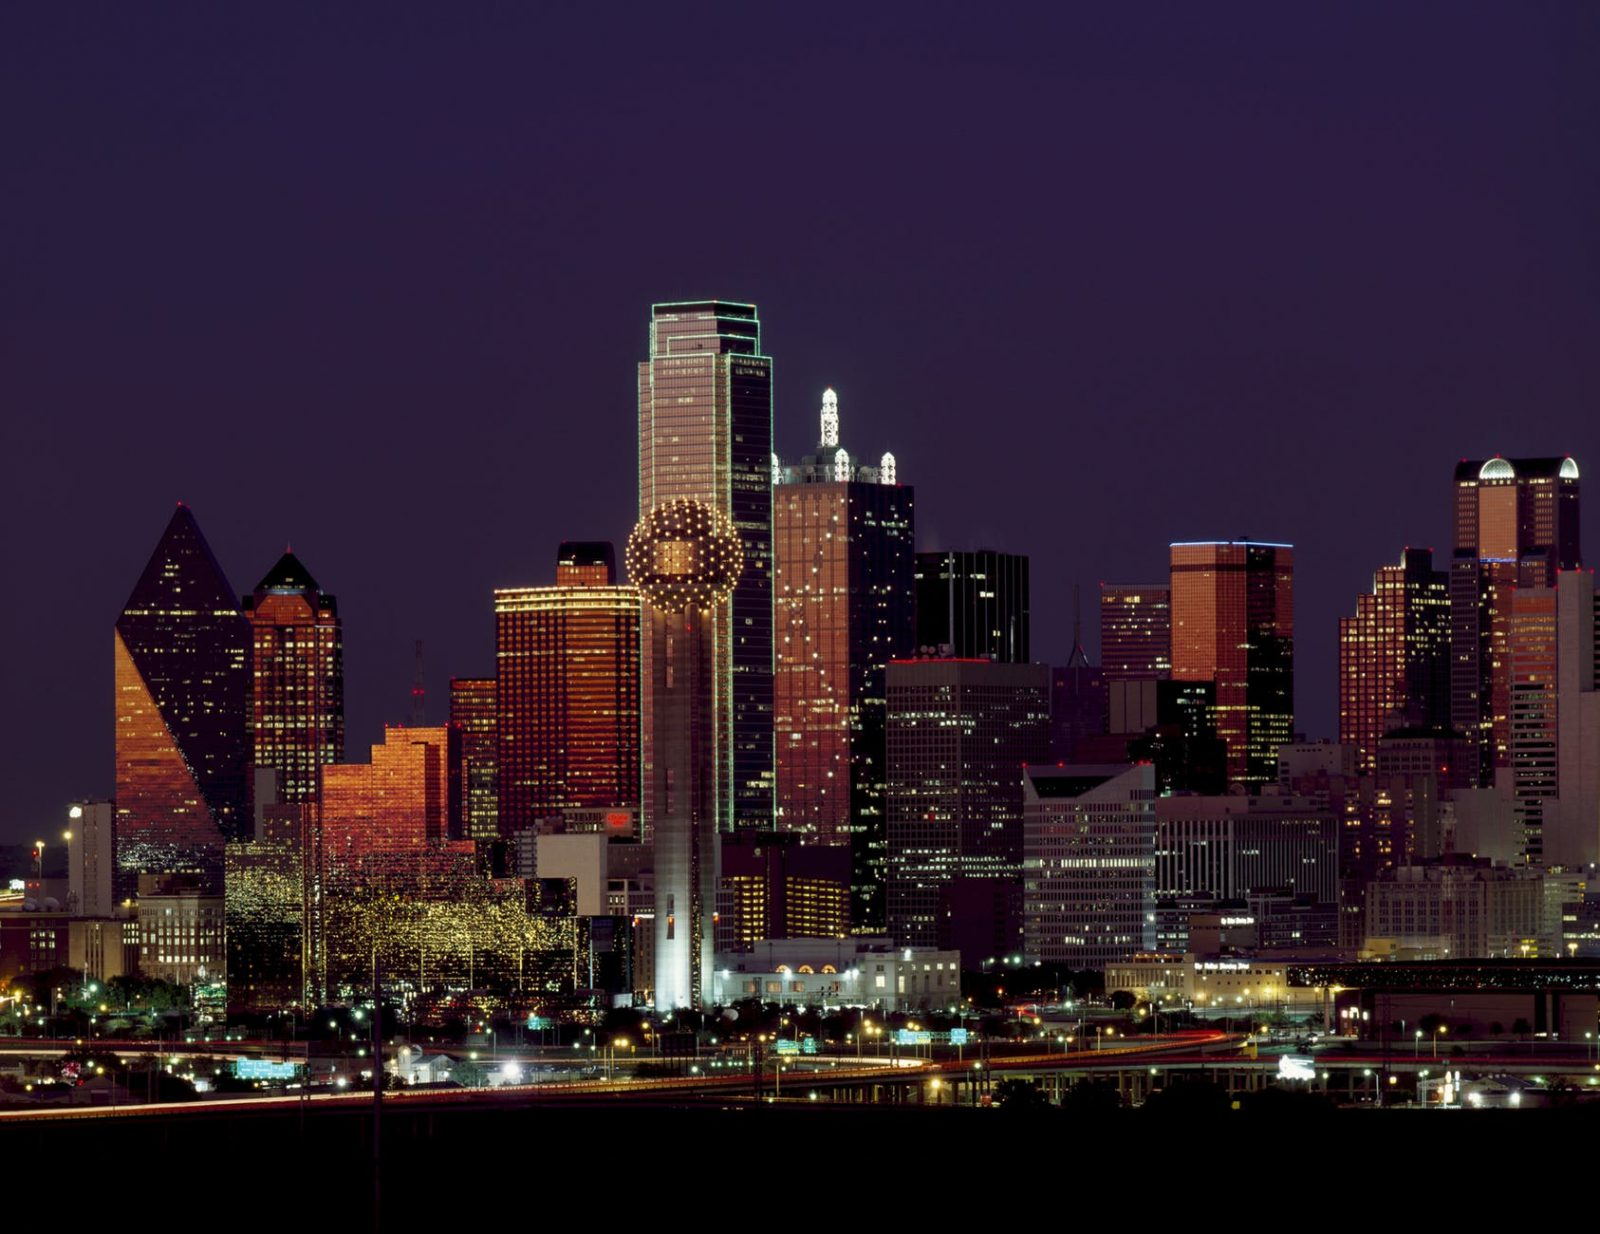 Flight Deal Round Trip From New York Area to Dallas Area #newyork #dallas #extendedweekend